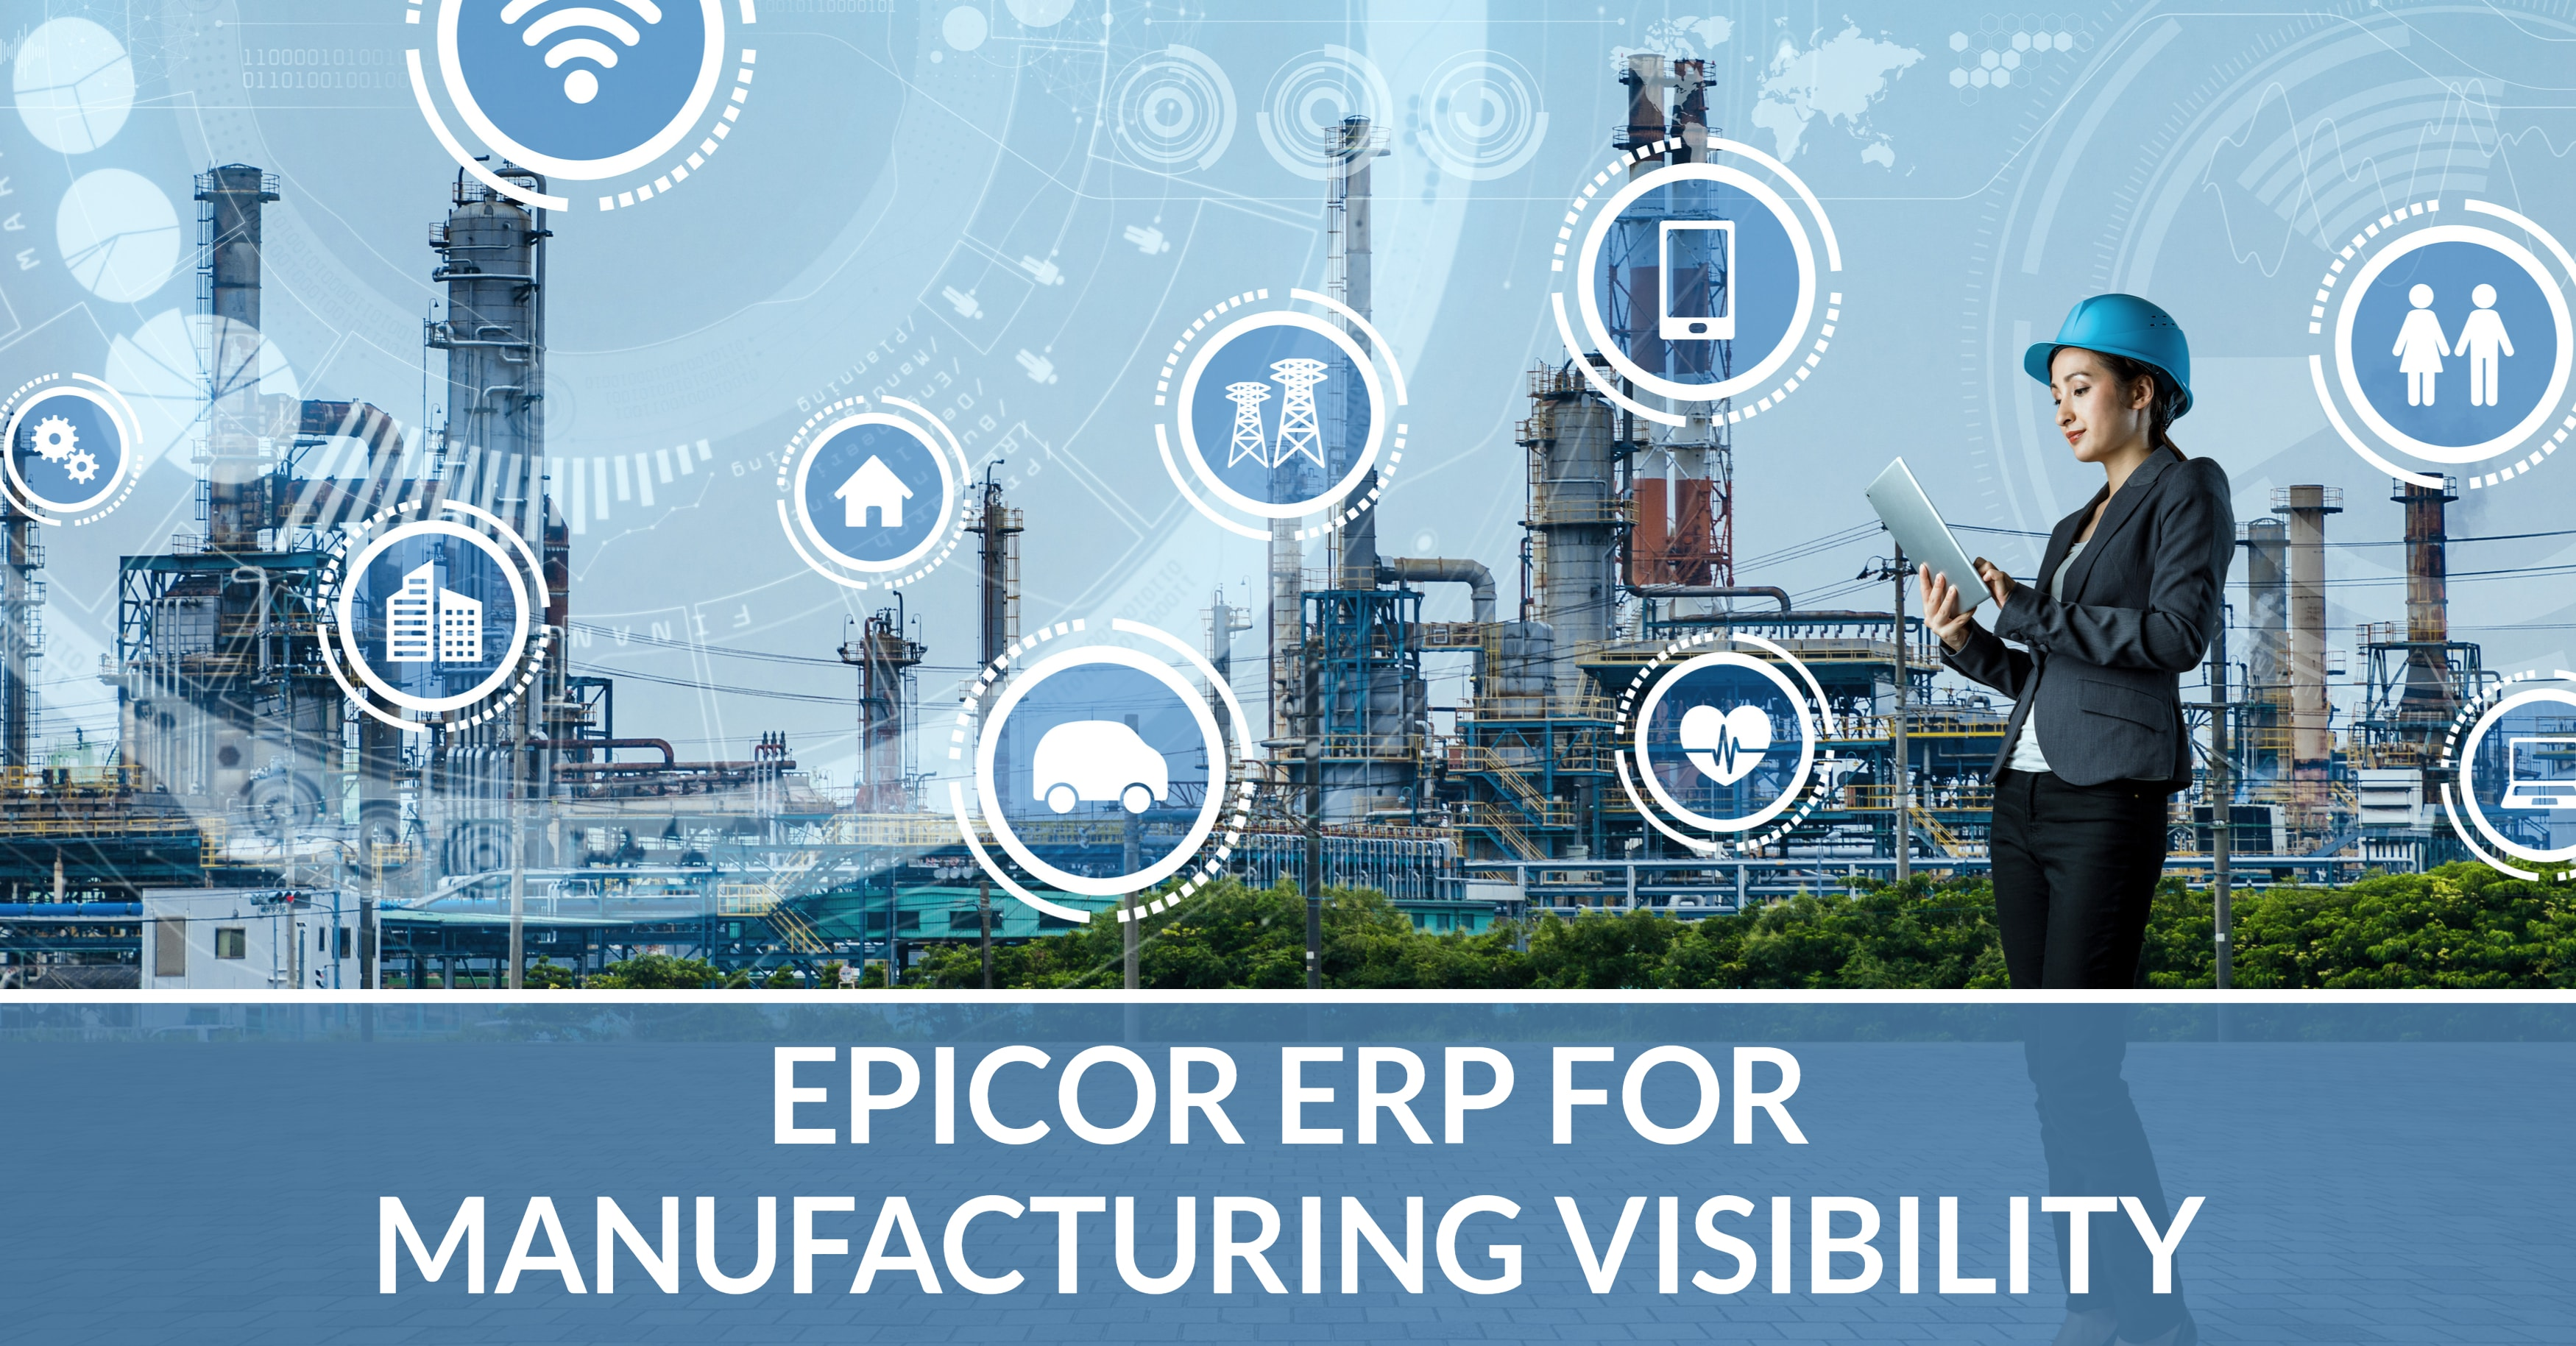 Epicor ERP Powers 360-Degree Manufacturing Visibility